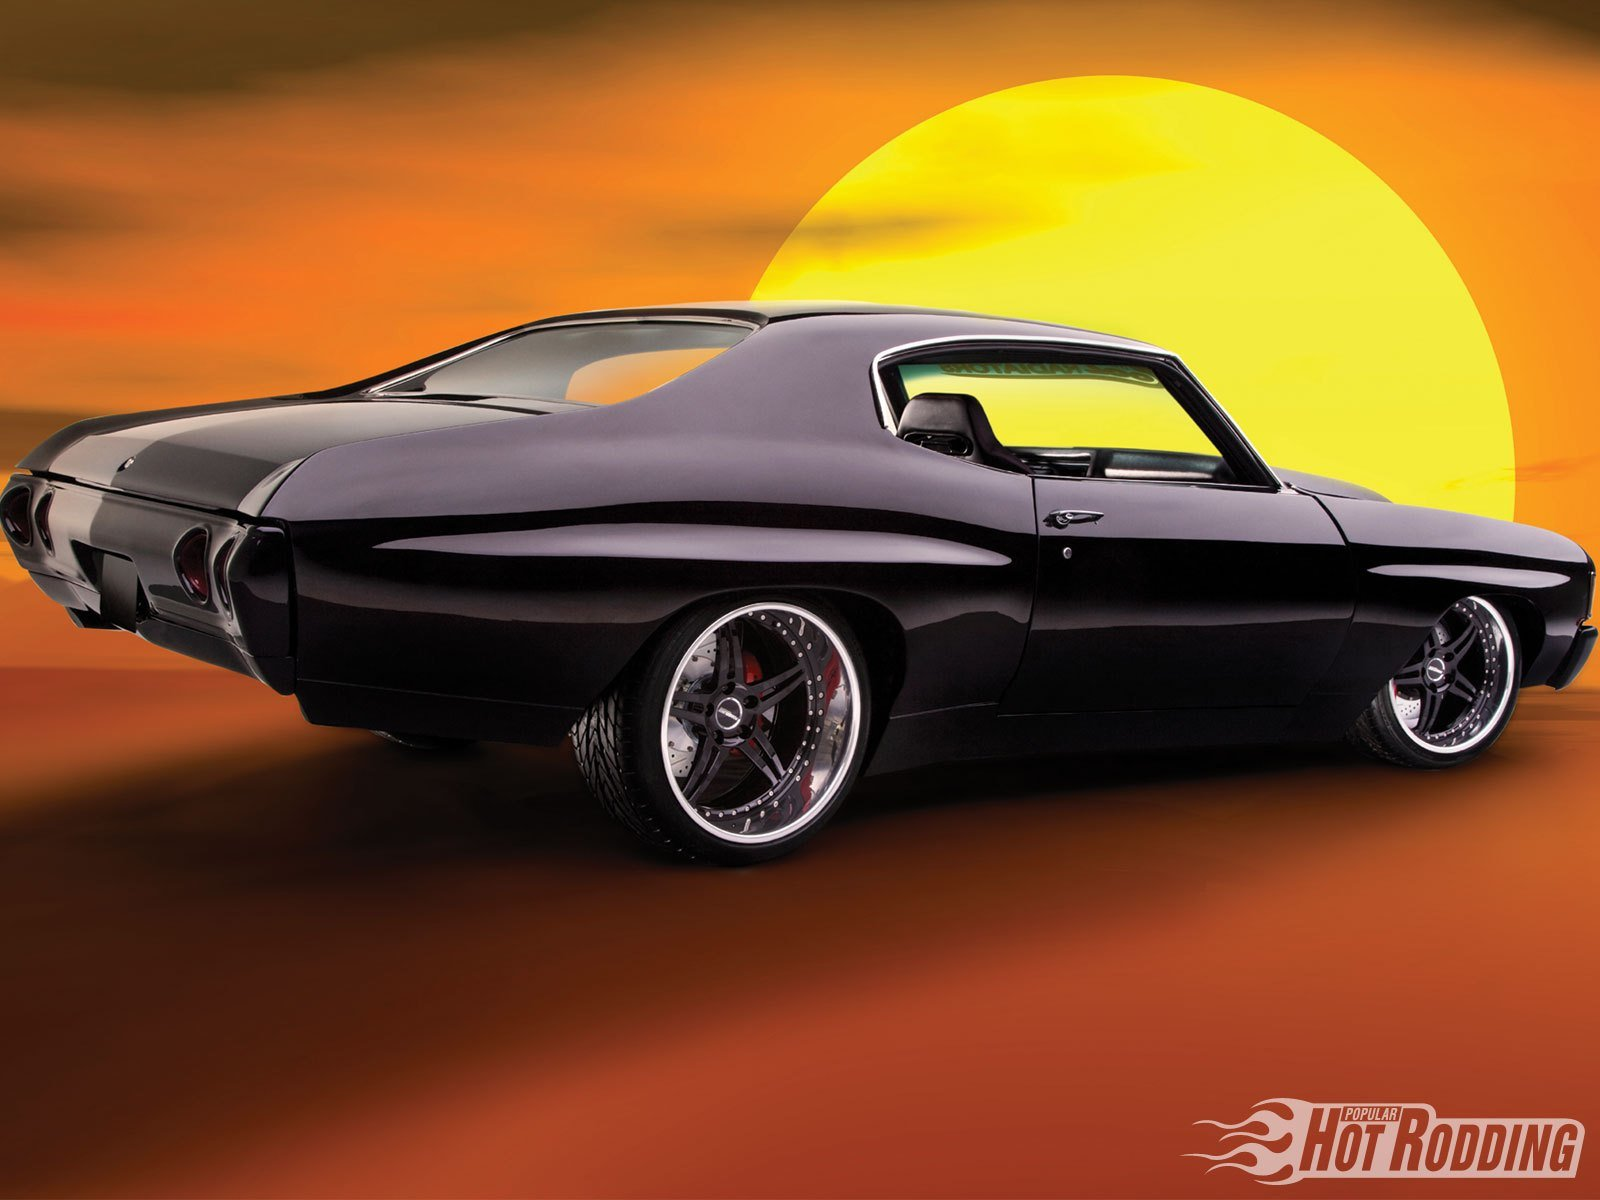 New 1972 Chevy Chevelle Wallpaper And Background Image On This Month